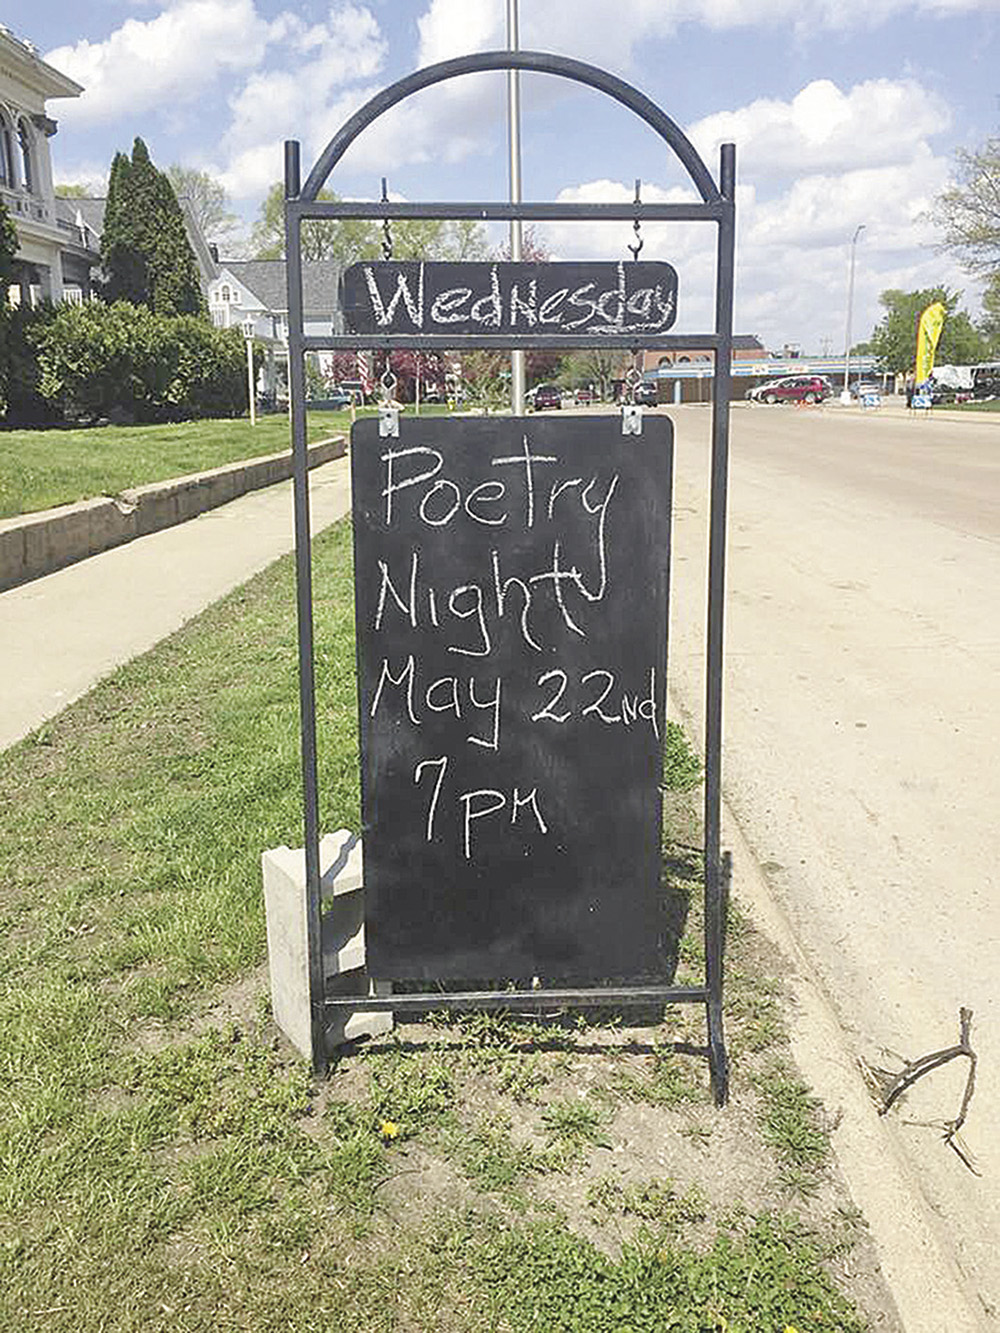 CCAC to host a night of poetry